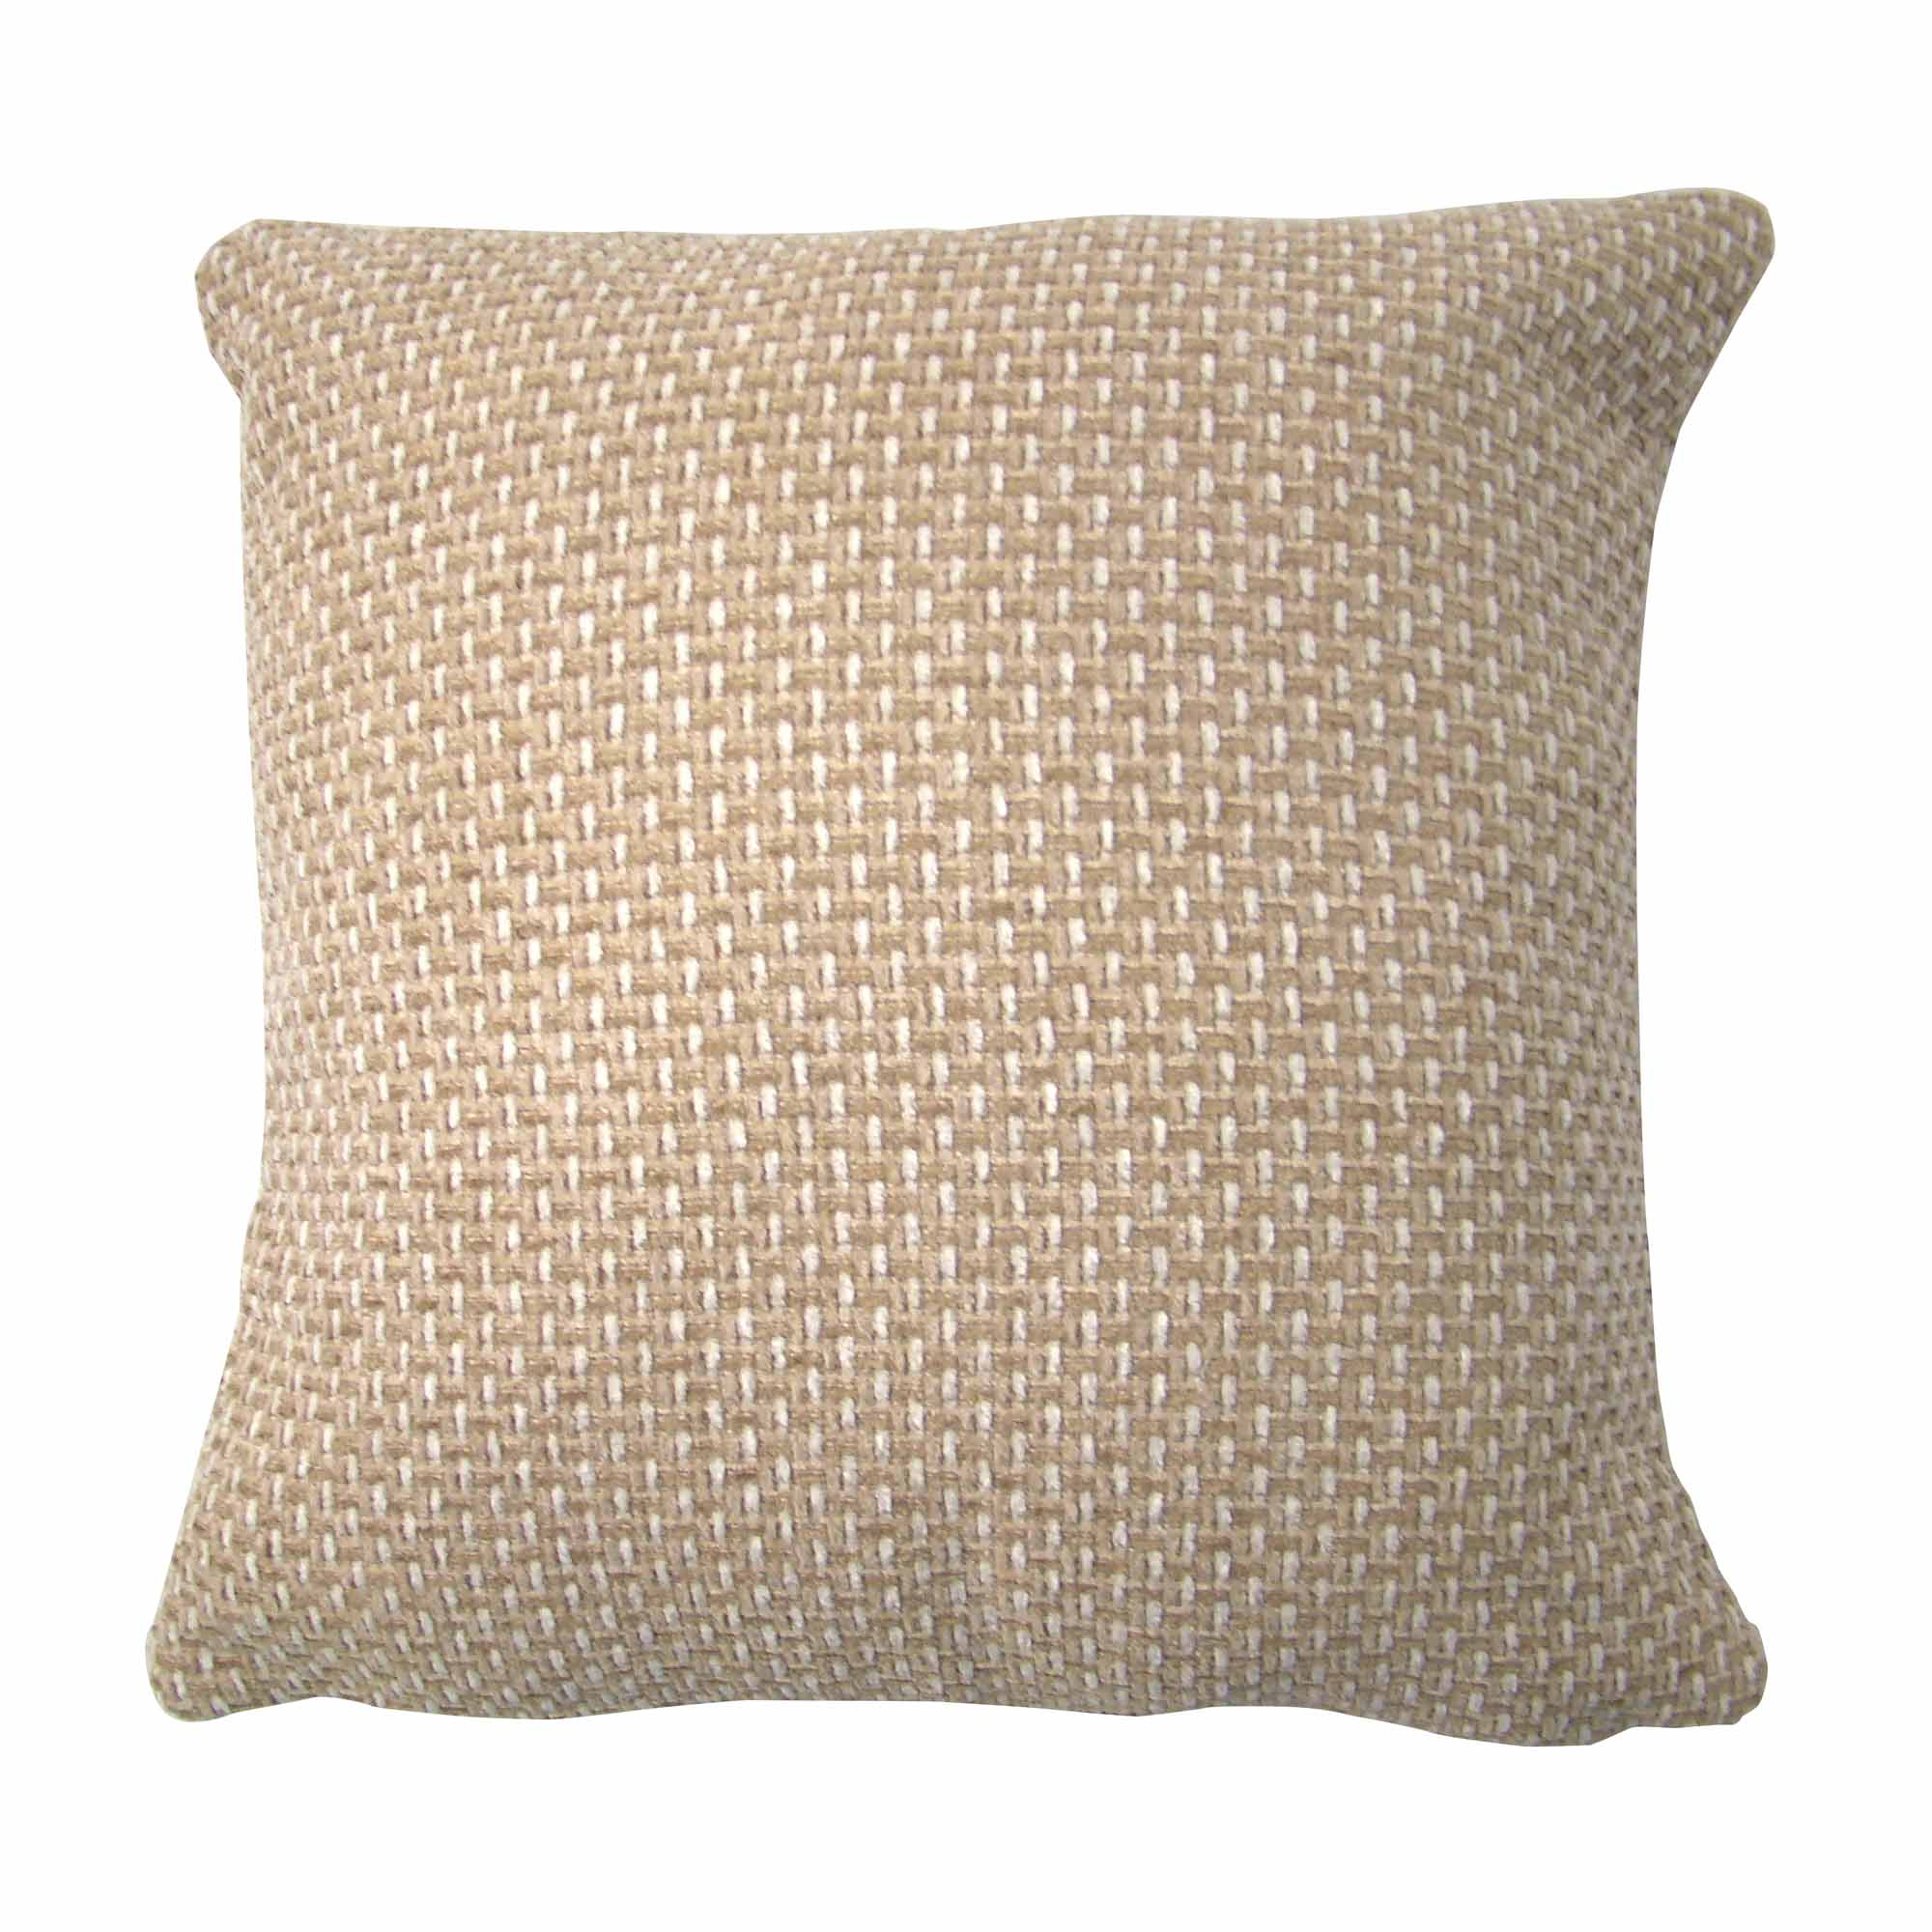 Photo of Tex weave cushion cover cream